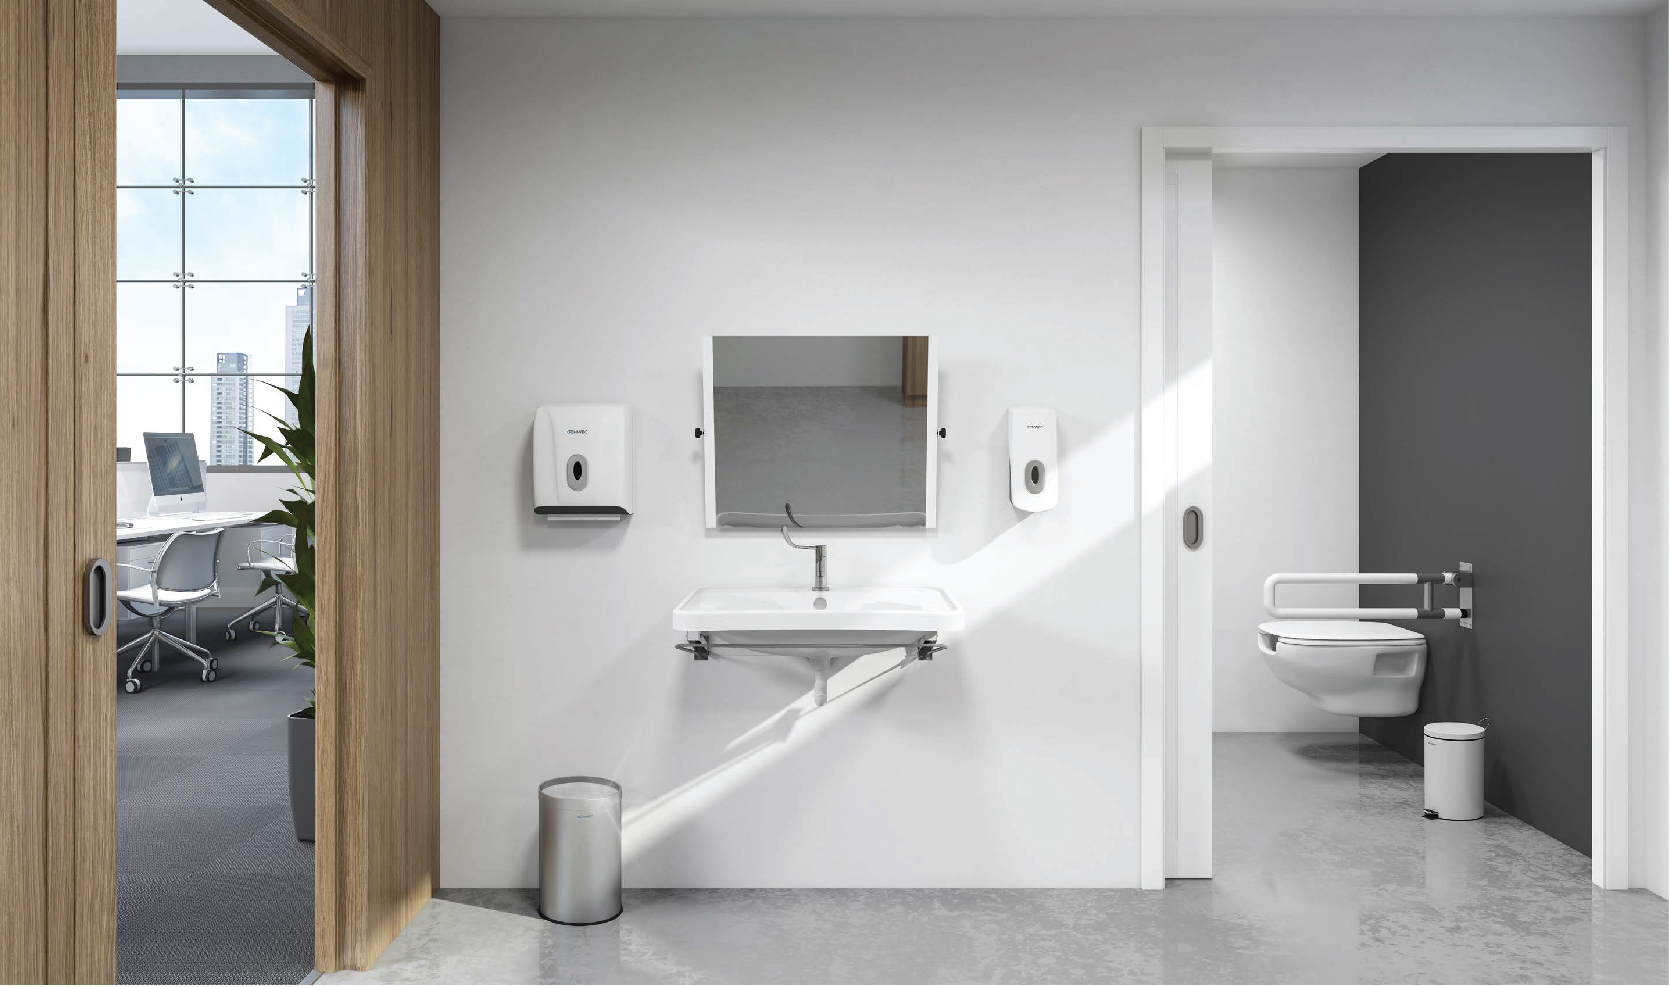 Genwec Commercial Toilet Accessories